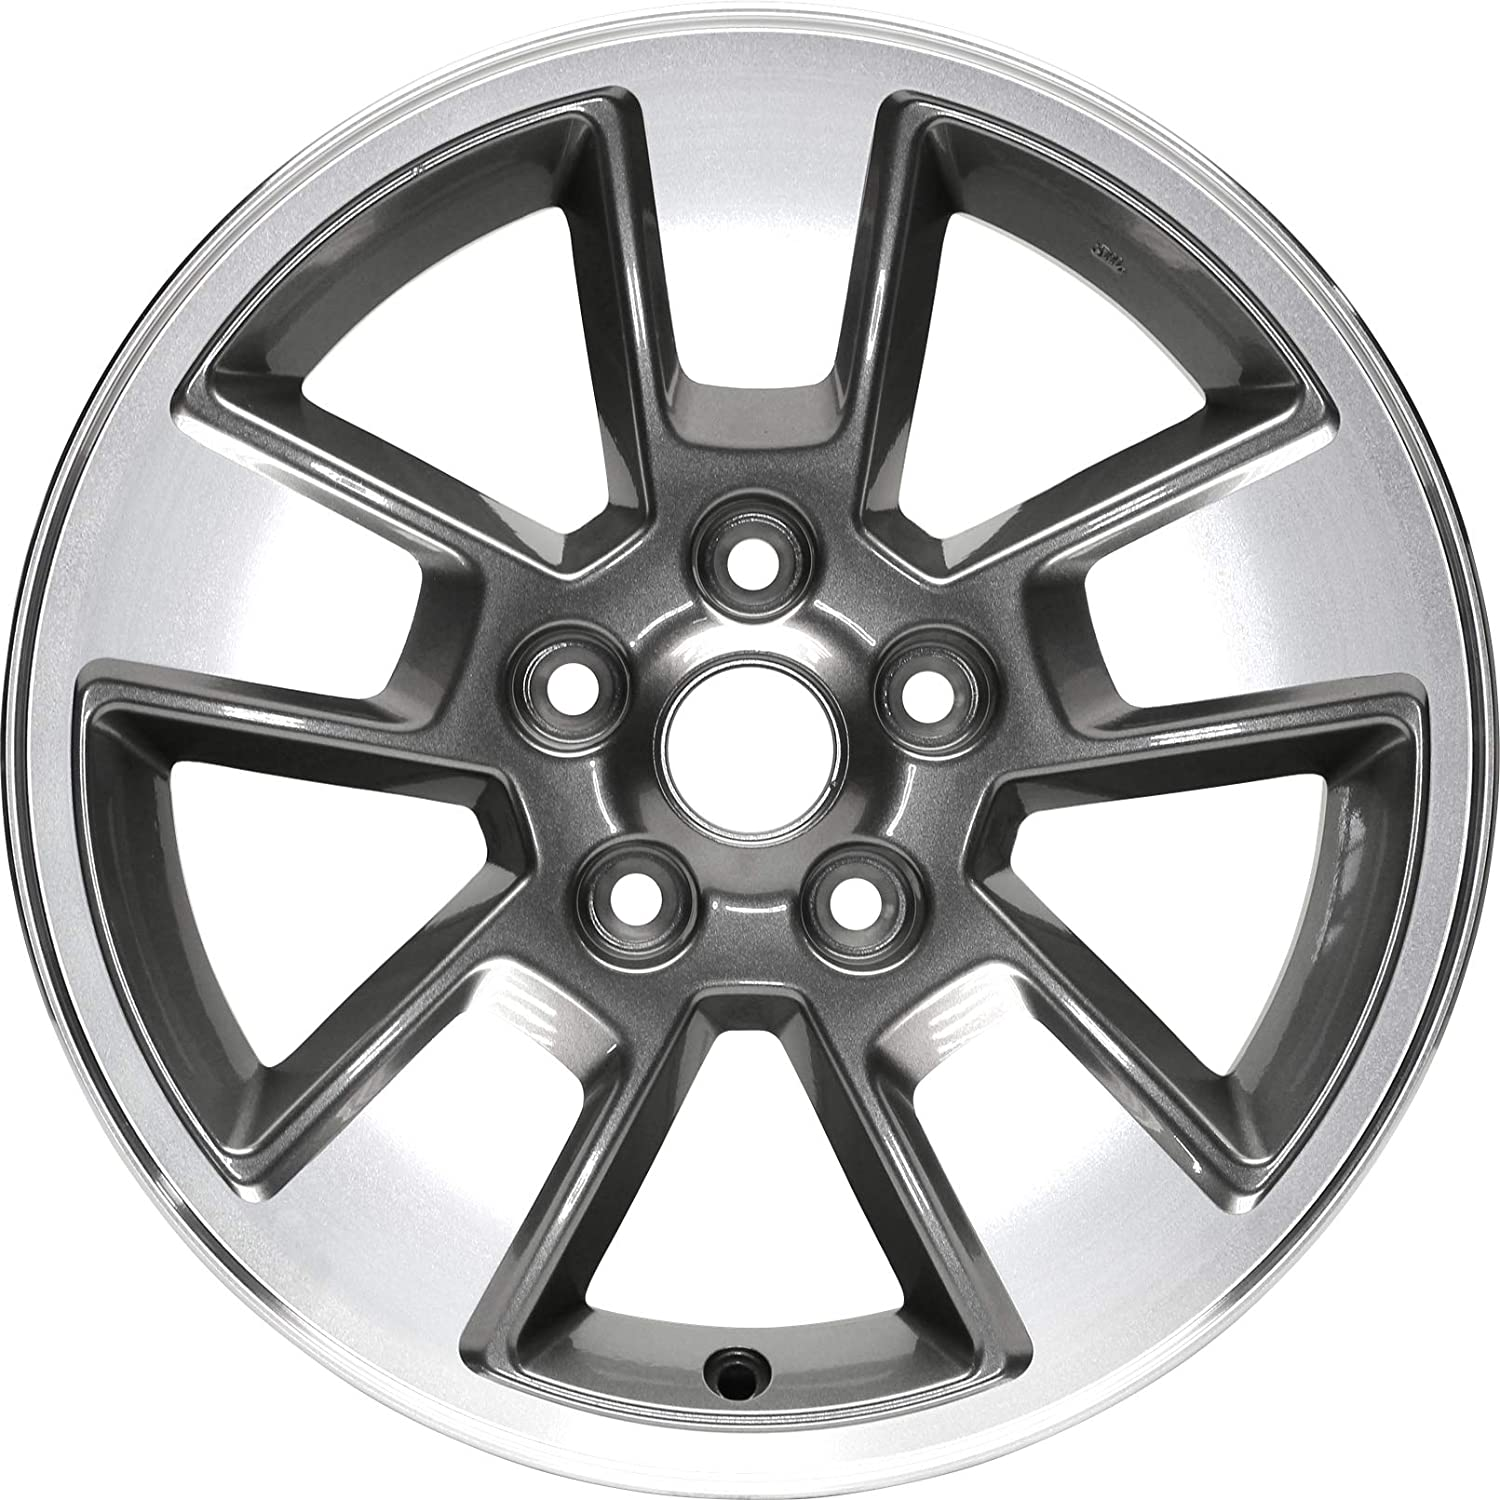 Partsynergy Replacement For New Aluminum Alloy Wheel Rim 16 Inch Fits 08-12 Jeep Liberty 5-115mm 5 Spokes